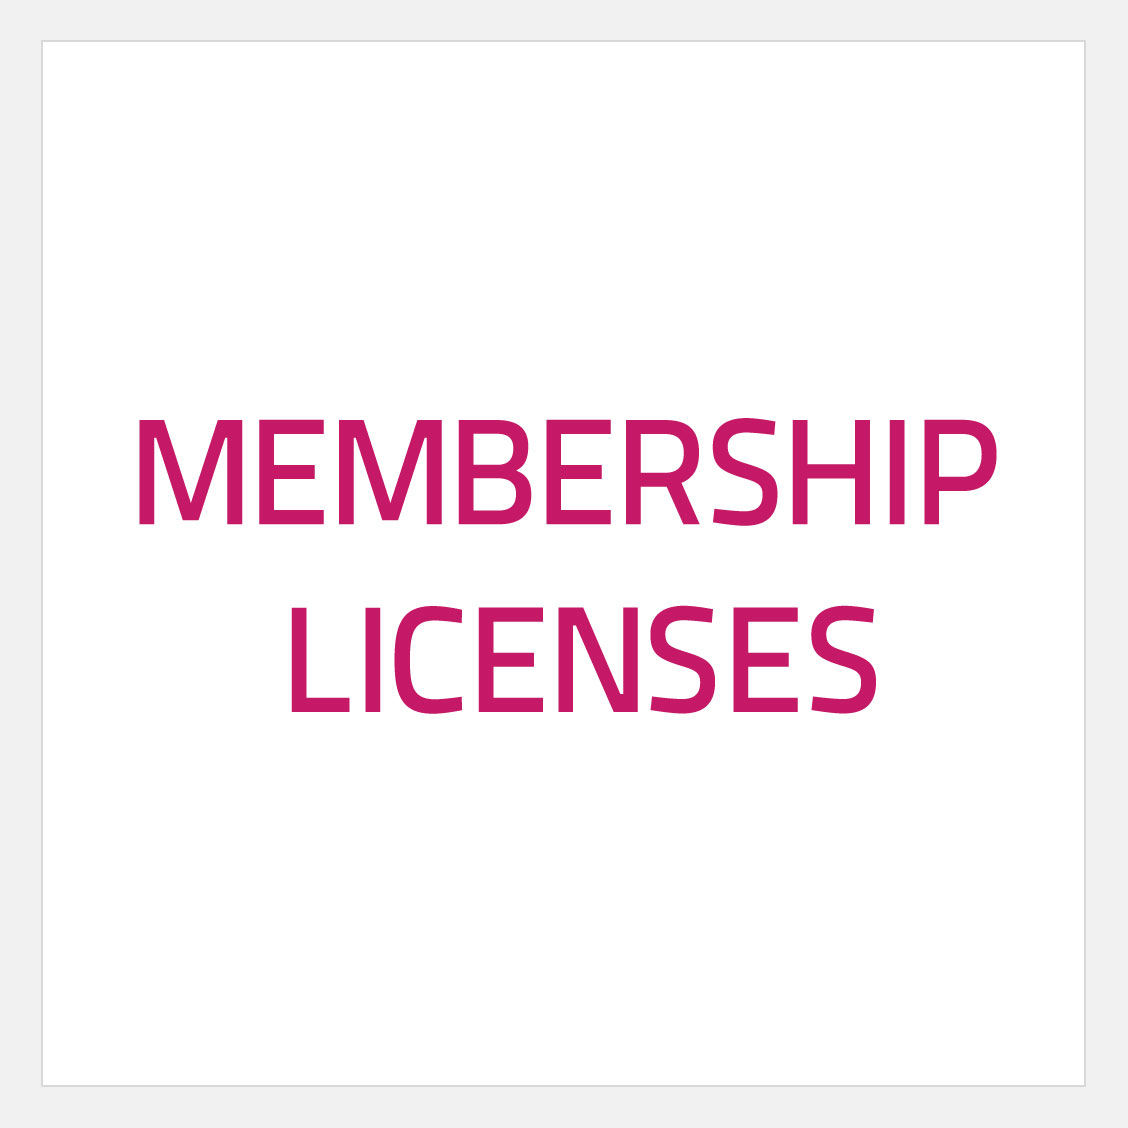 Membership licenses